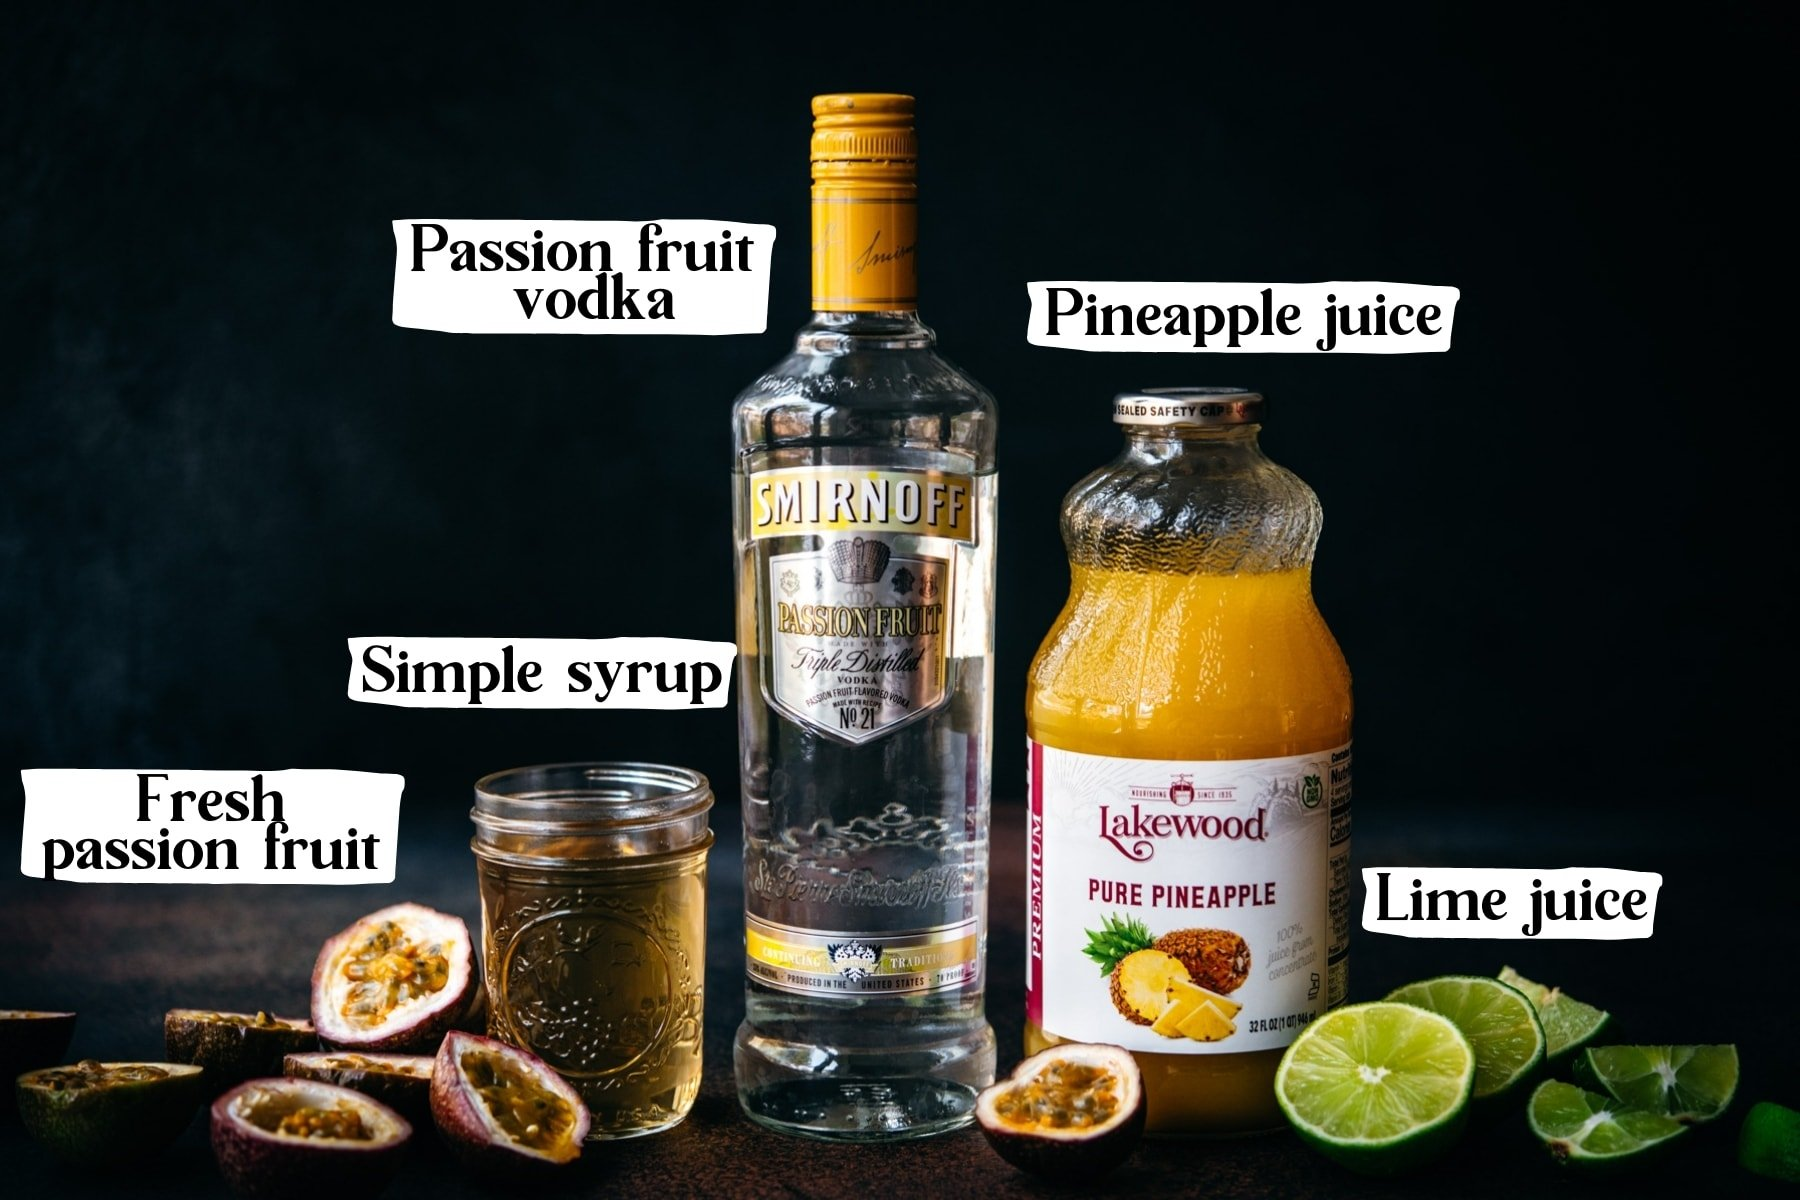 side view of ingredients for passion fruit martini with text labels.